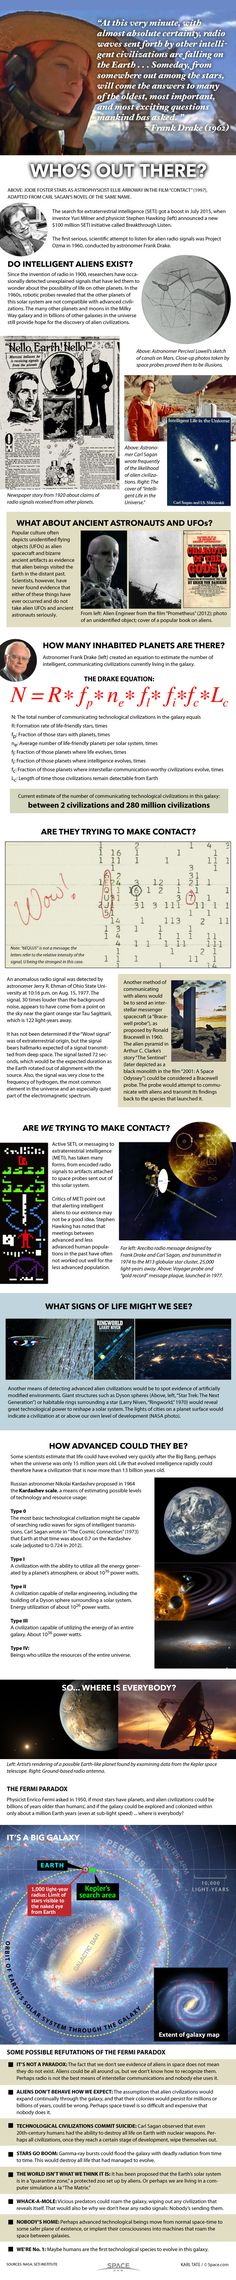 SETI: All About the Search for Extraterrestrial Intelligence   10/19/15 Are we the only intelligent life in the universe? Here's how we intend to find out.